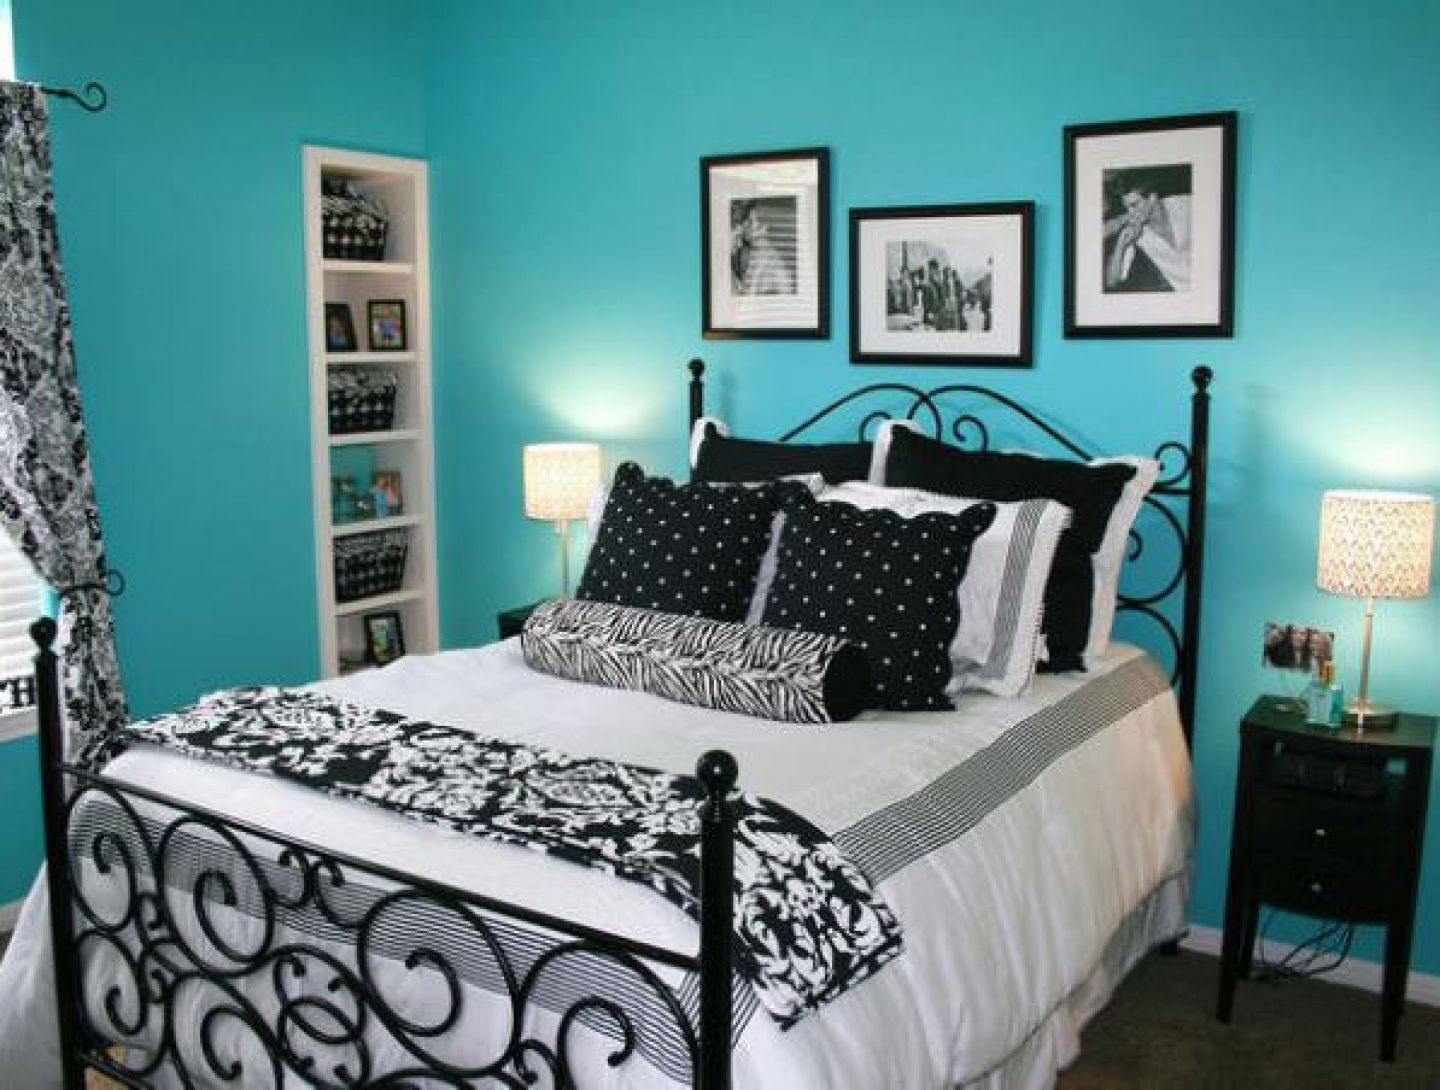 Wall paint colors for girls bedroom - Comfy Small Bedroom Idea For Teen Girls With Cool Turquoise Wall Paint Color And Vintage Wall